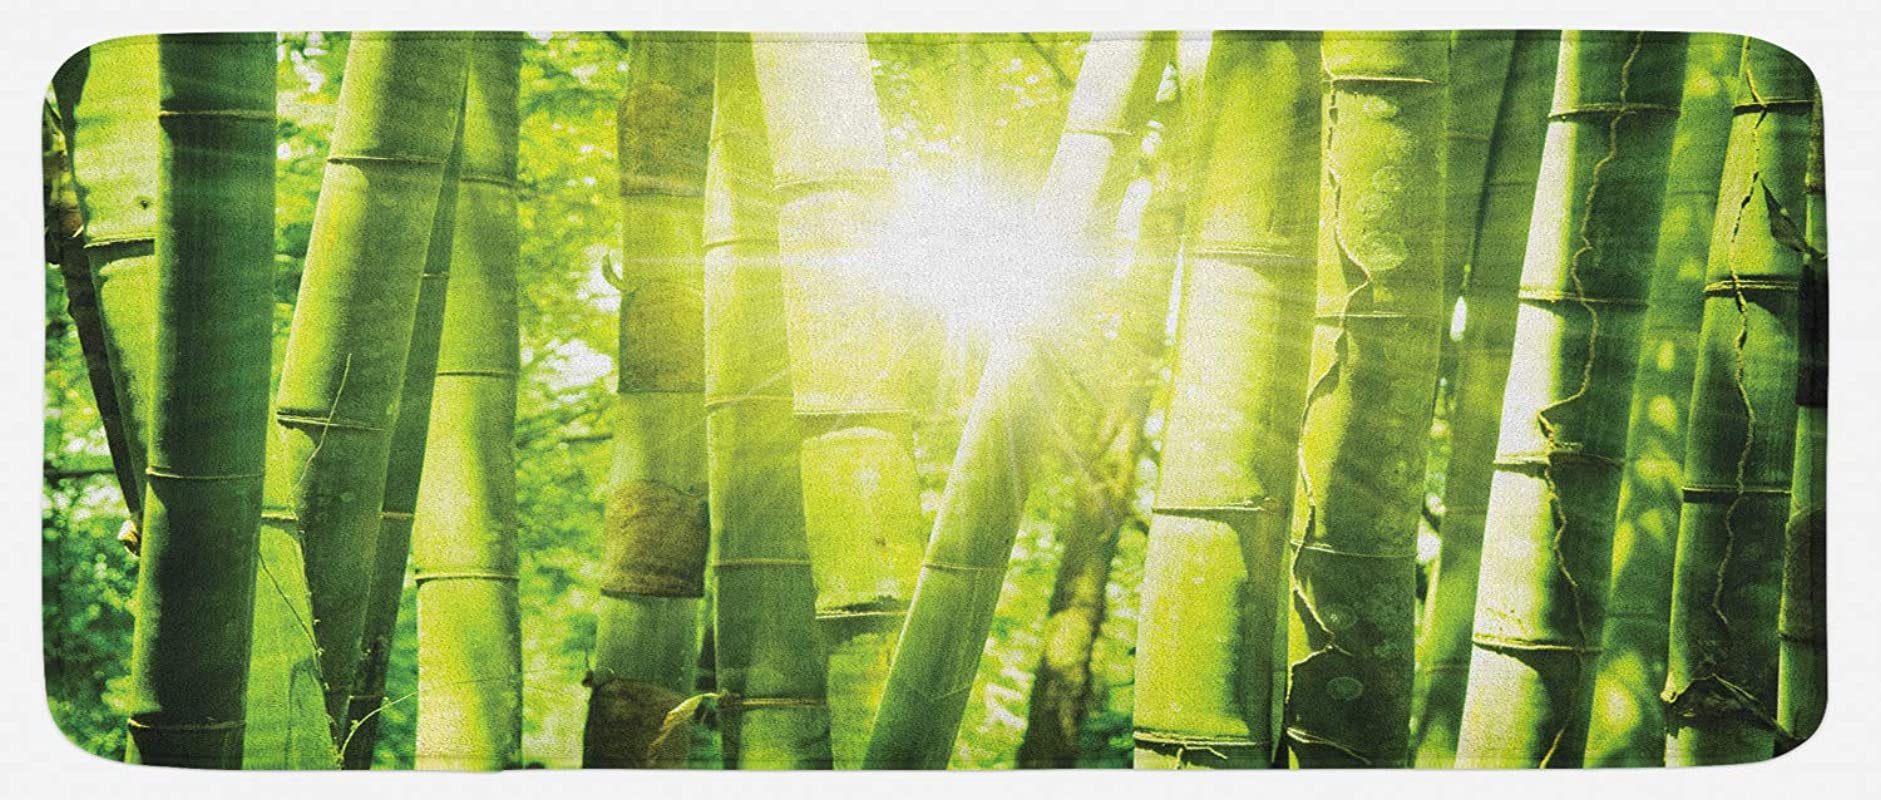 Ambesonne Asian Kitchen Mat Bamboo Forest With Morning Sunlight Sun Beams Through Trees Jungle Scene Plush Decorative Kithcen Mat With Non Slip Backing 47 X 19 Lime Green Yellow